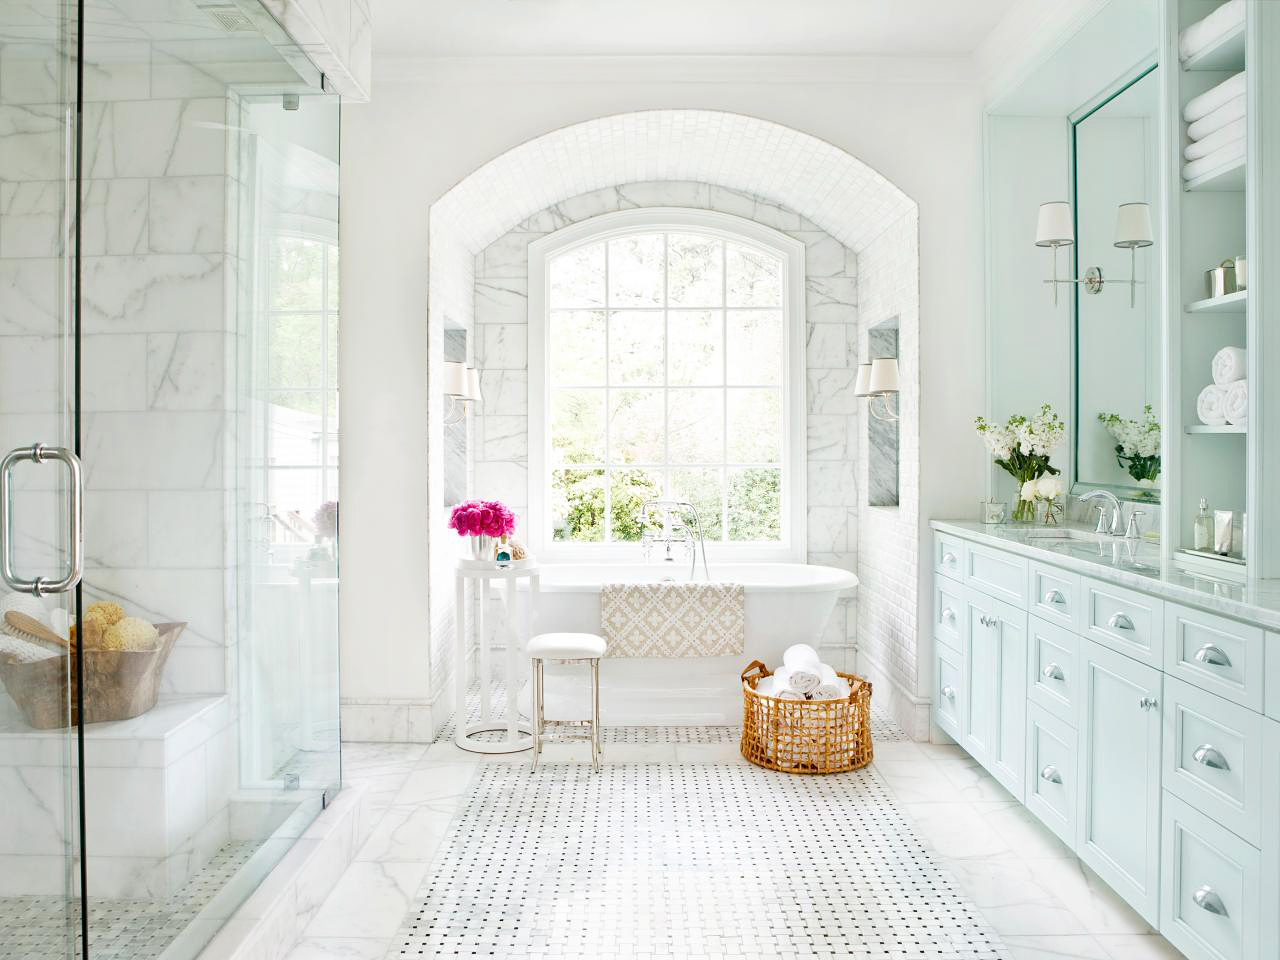 Creating A Timeless Bathroom Look All You Need To Know - French inspired bathroom accessories for bathroom decor ideas